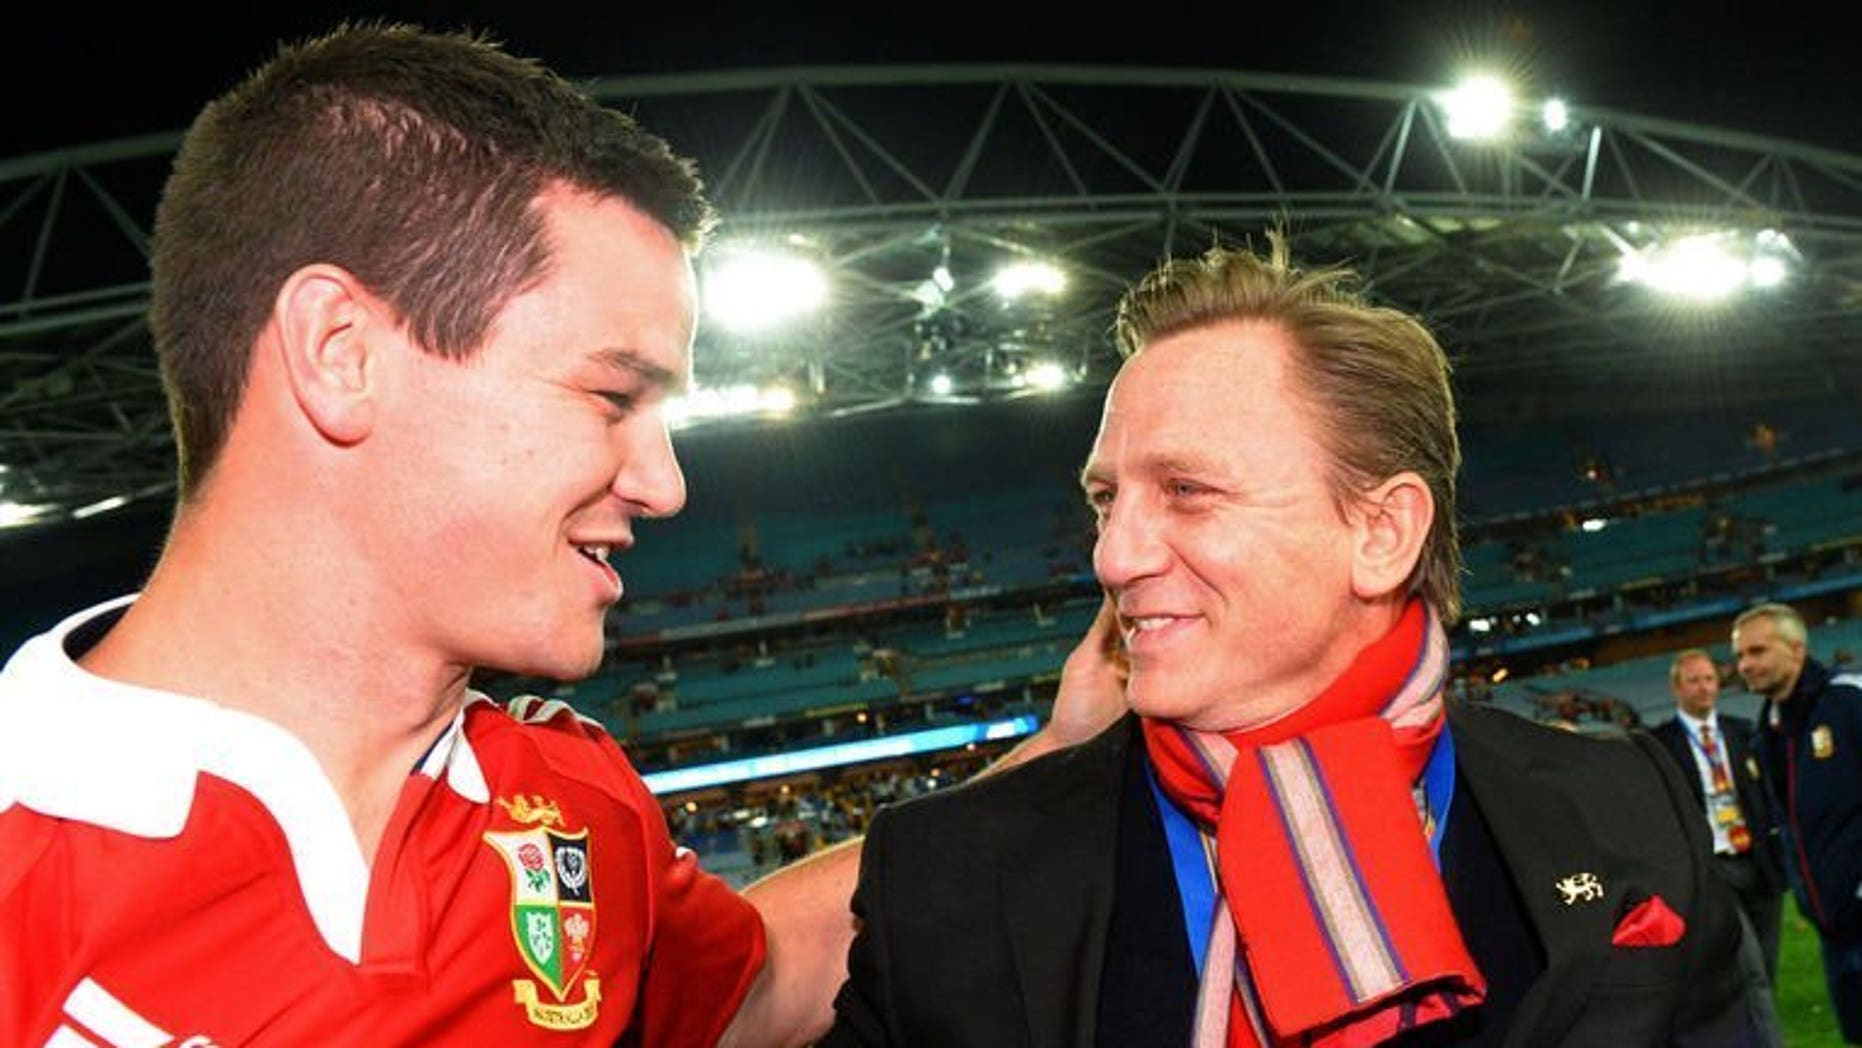 British and Irish Lions flyhalf Jonathan Sexton (L) celebrates with British actor Daniel Craig (R) after the Lions defeat the Australian Wallabies in the third rugby Test match played in Sydney on July 6, 2013. Craig brought a little stardust to the celebrations on Saturday.